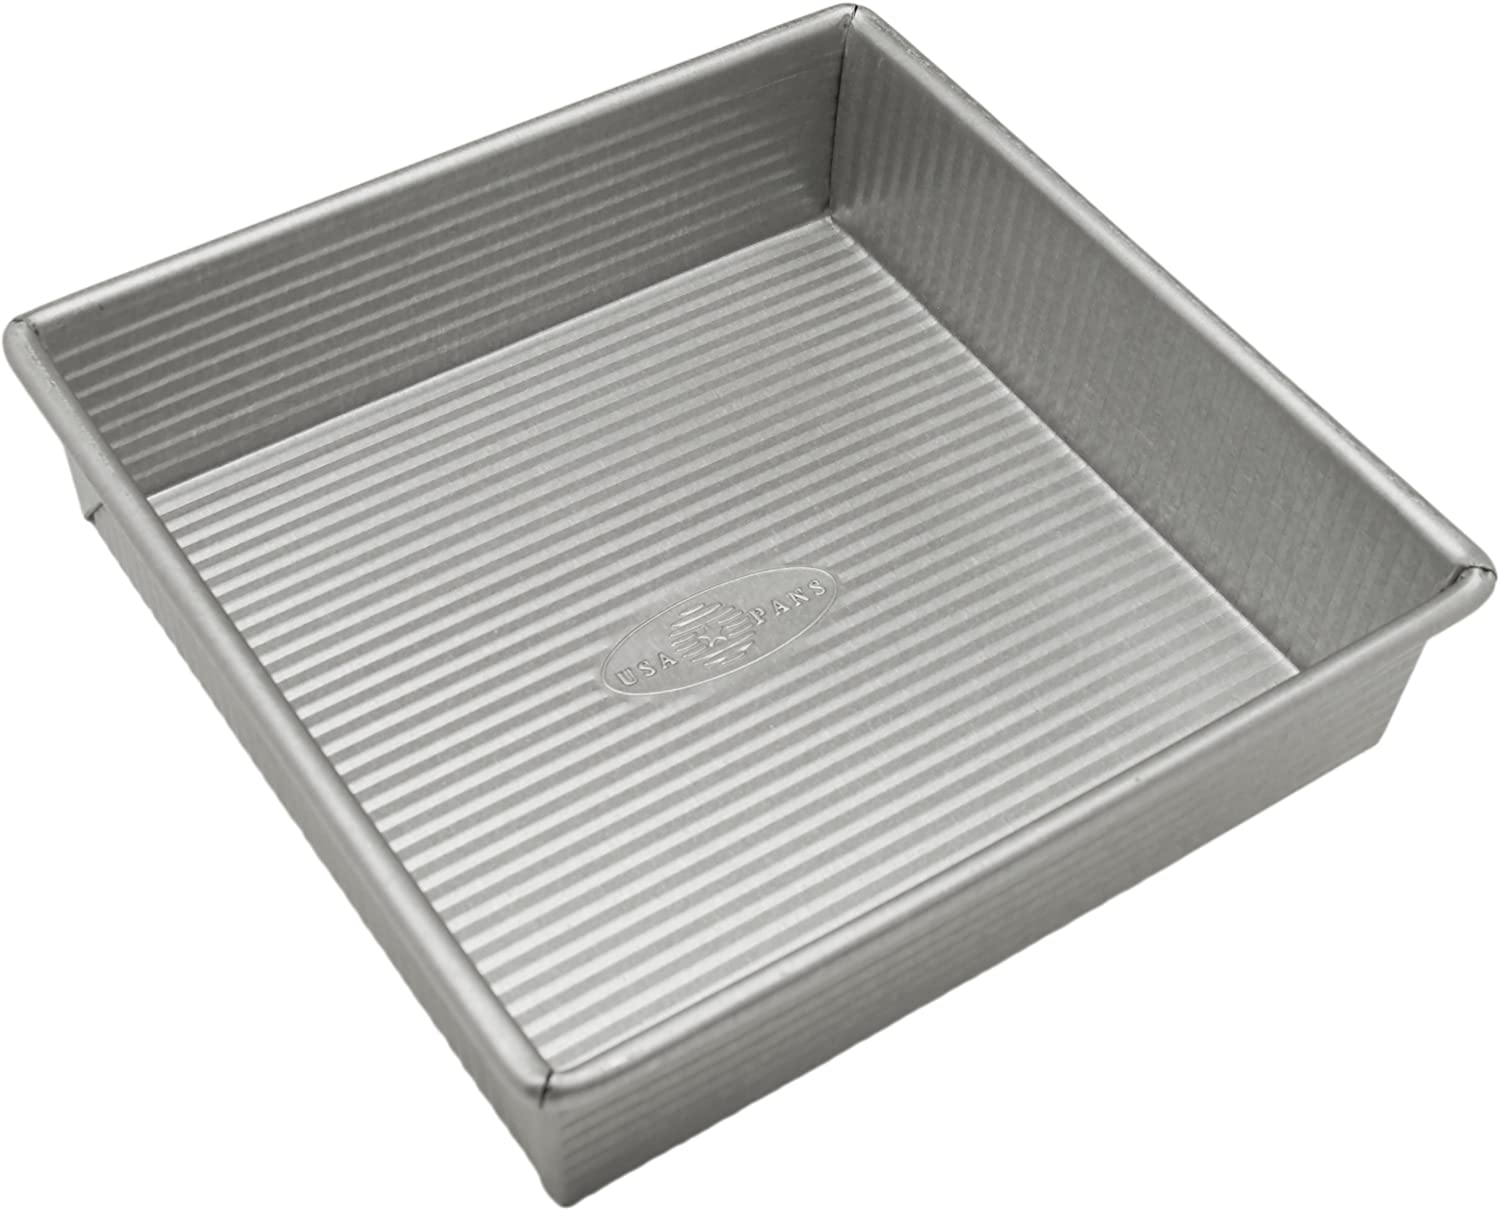 USA Pan Bakeware Square Cake Pan, 8 inch, Nonstick